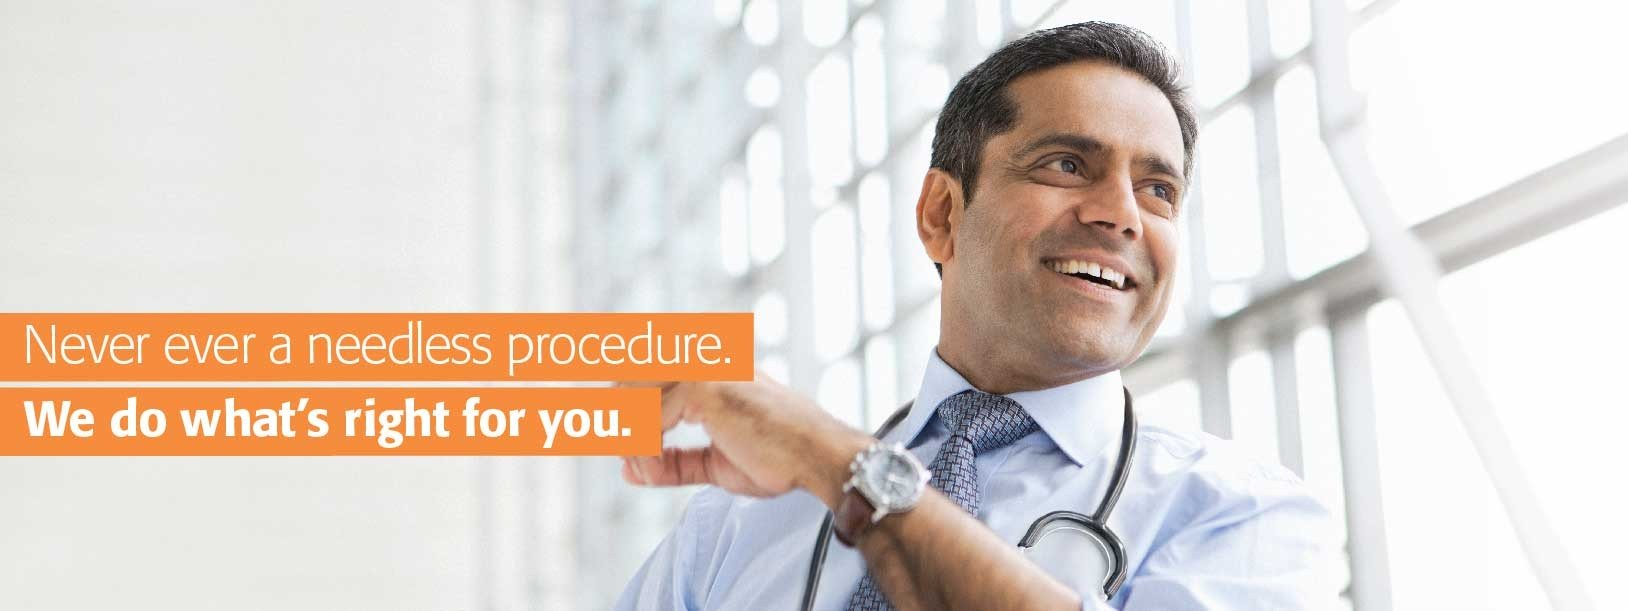 Never ever a needless procedure. We do what's right for you.